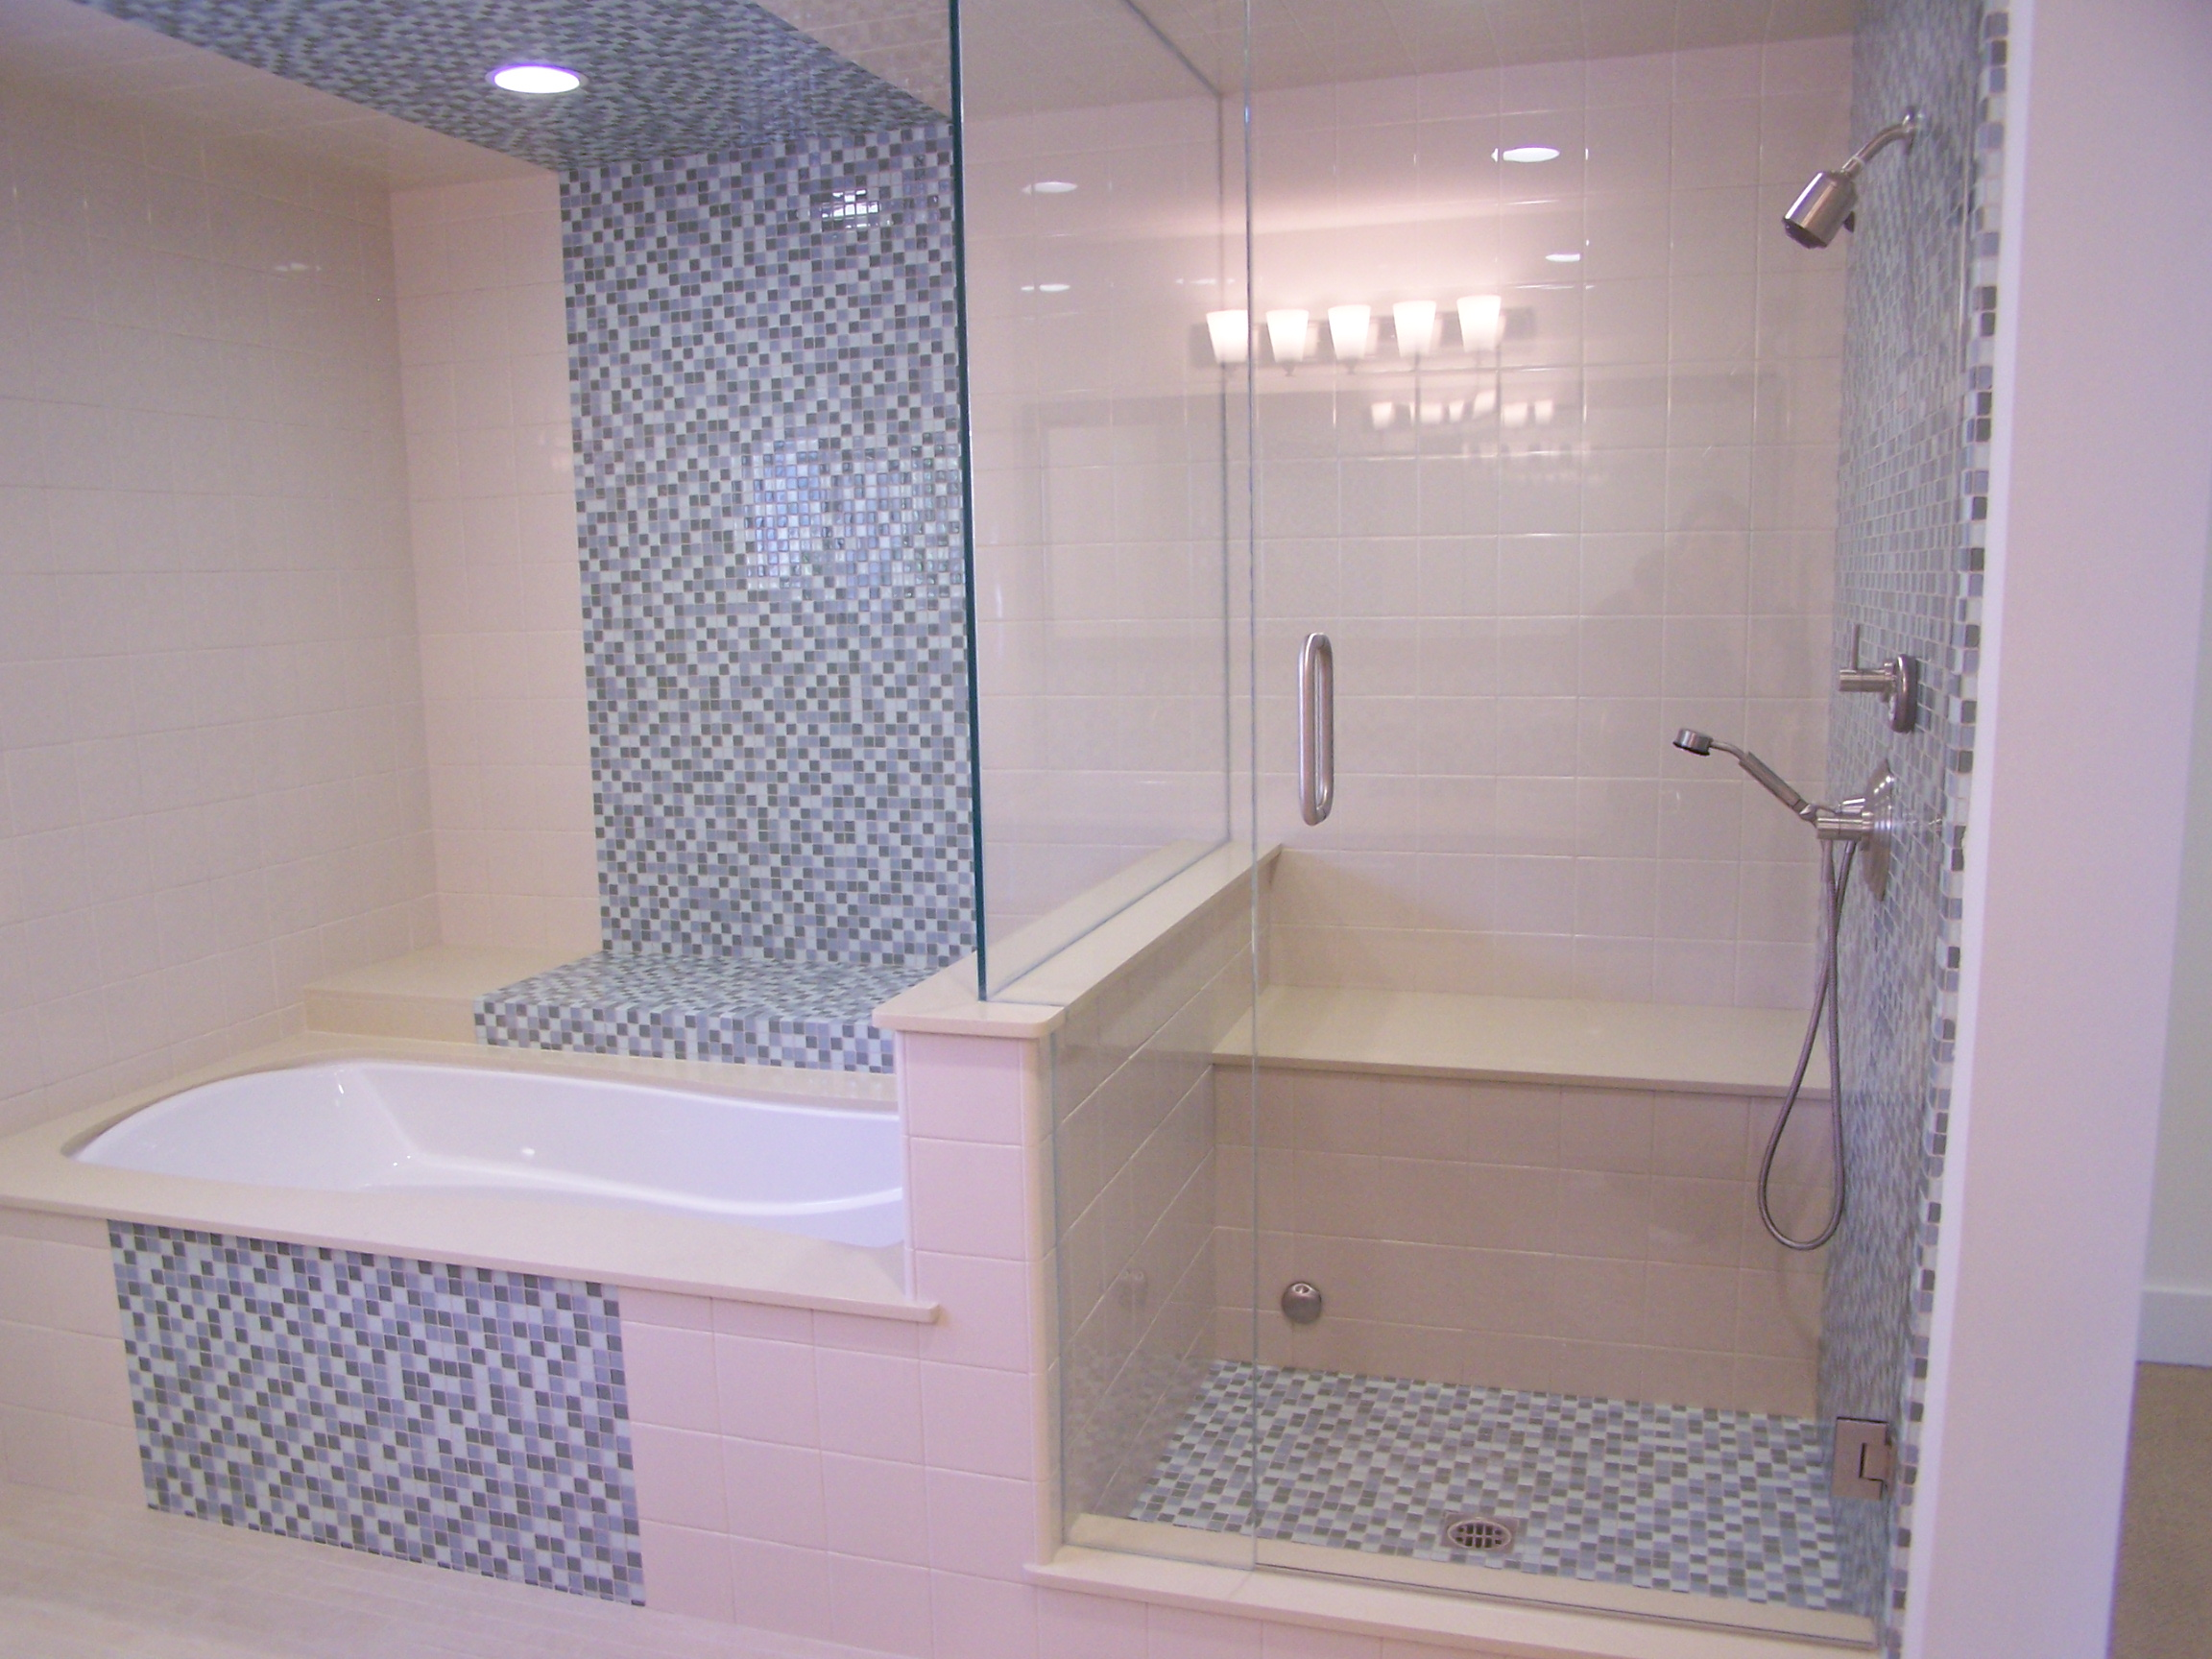 Bathroom designs pictures with tiles - Cute Pink Bathroom Wall Tiles Design Great Home